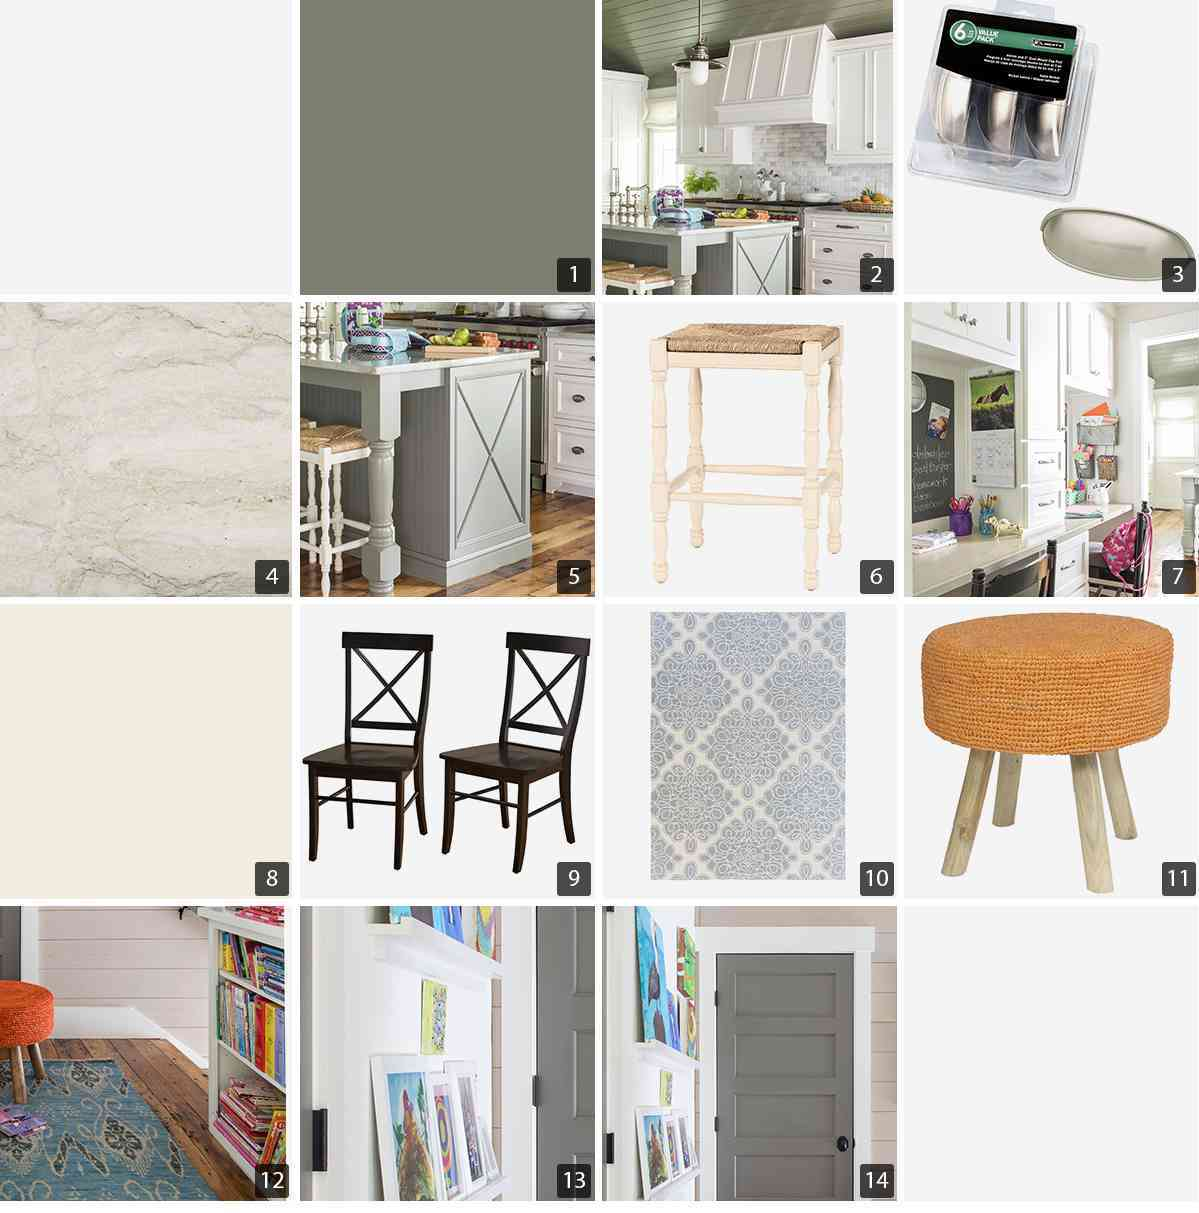 Collage of home products including kitchen cabinets, stools, and rugs photo